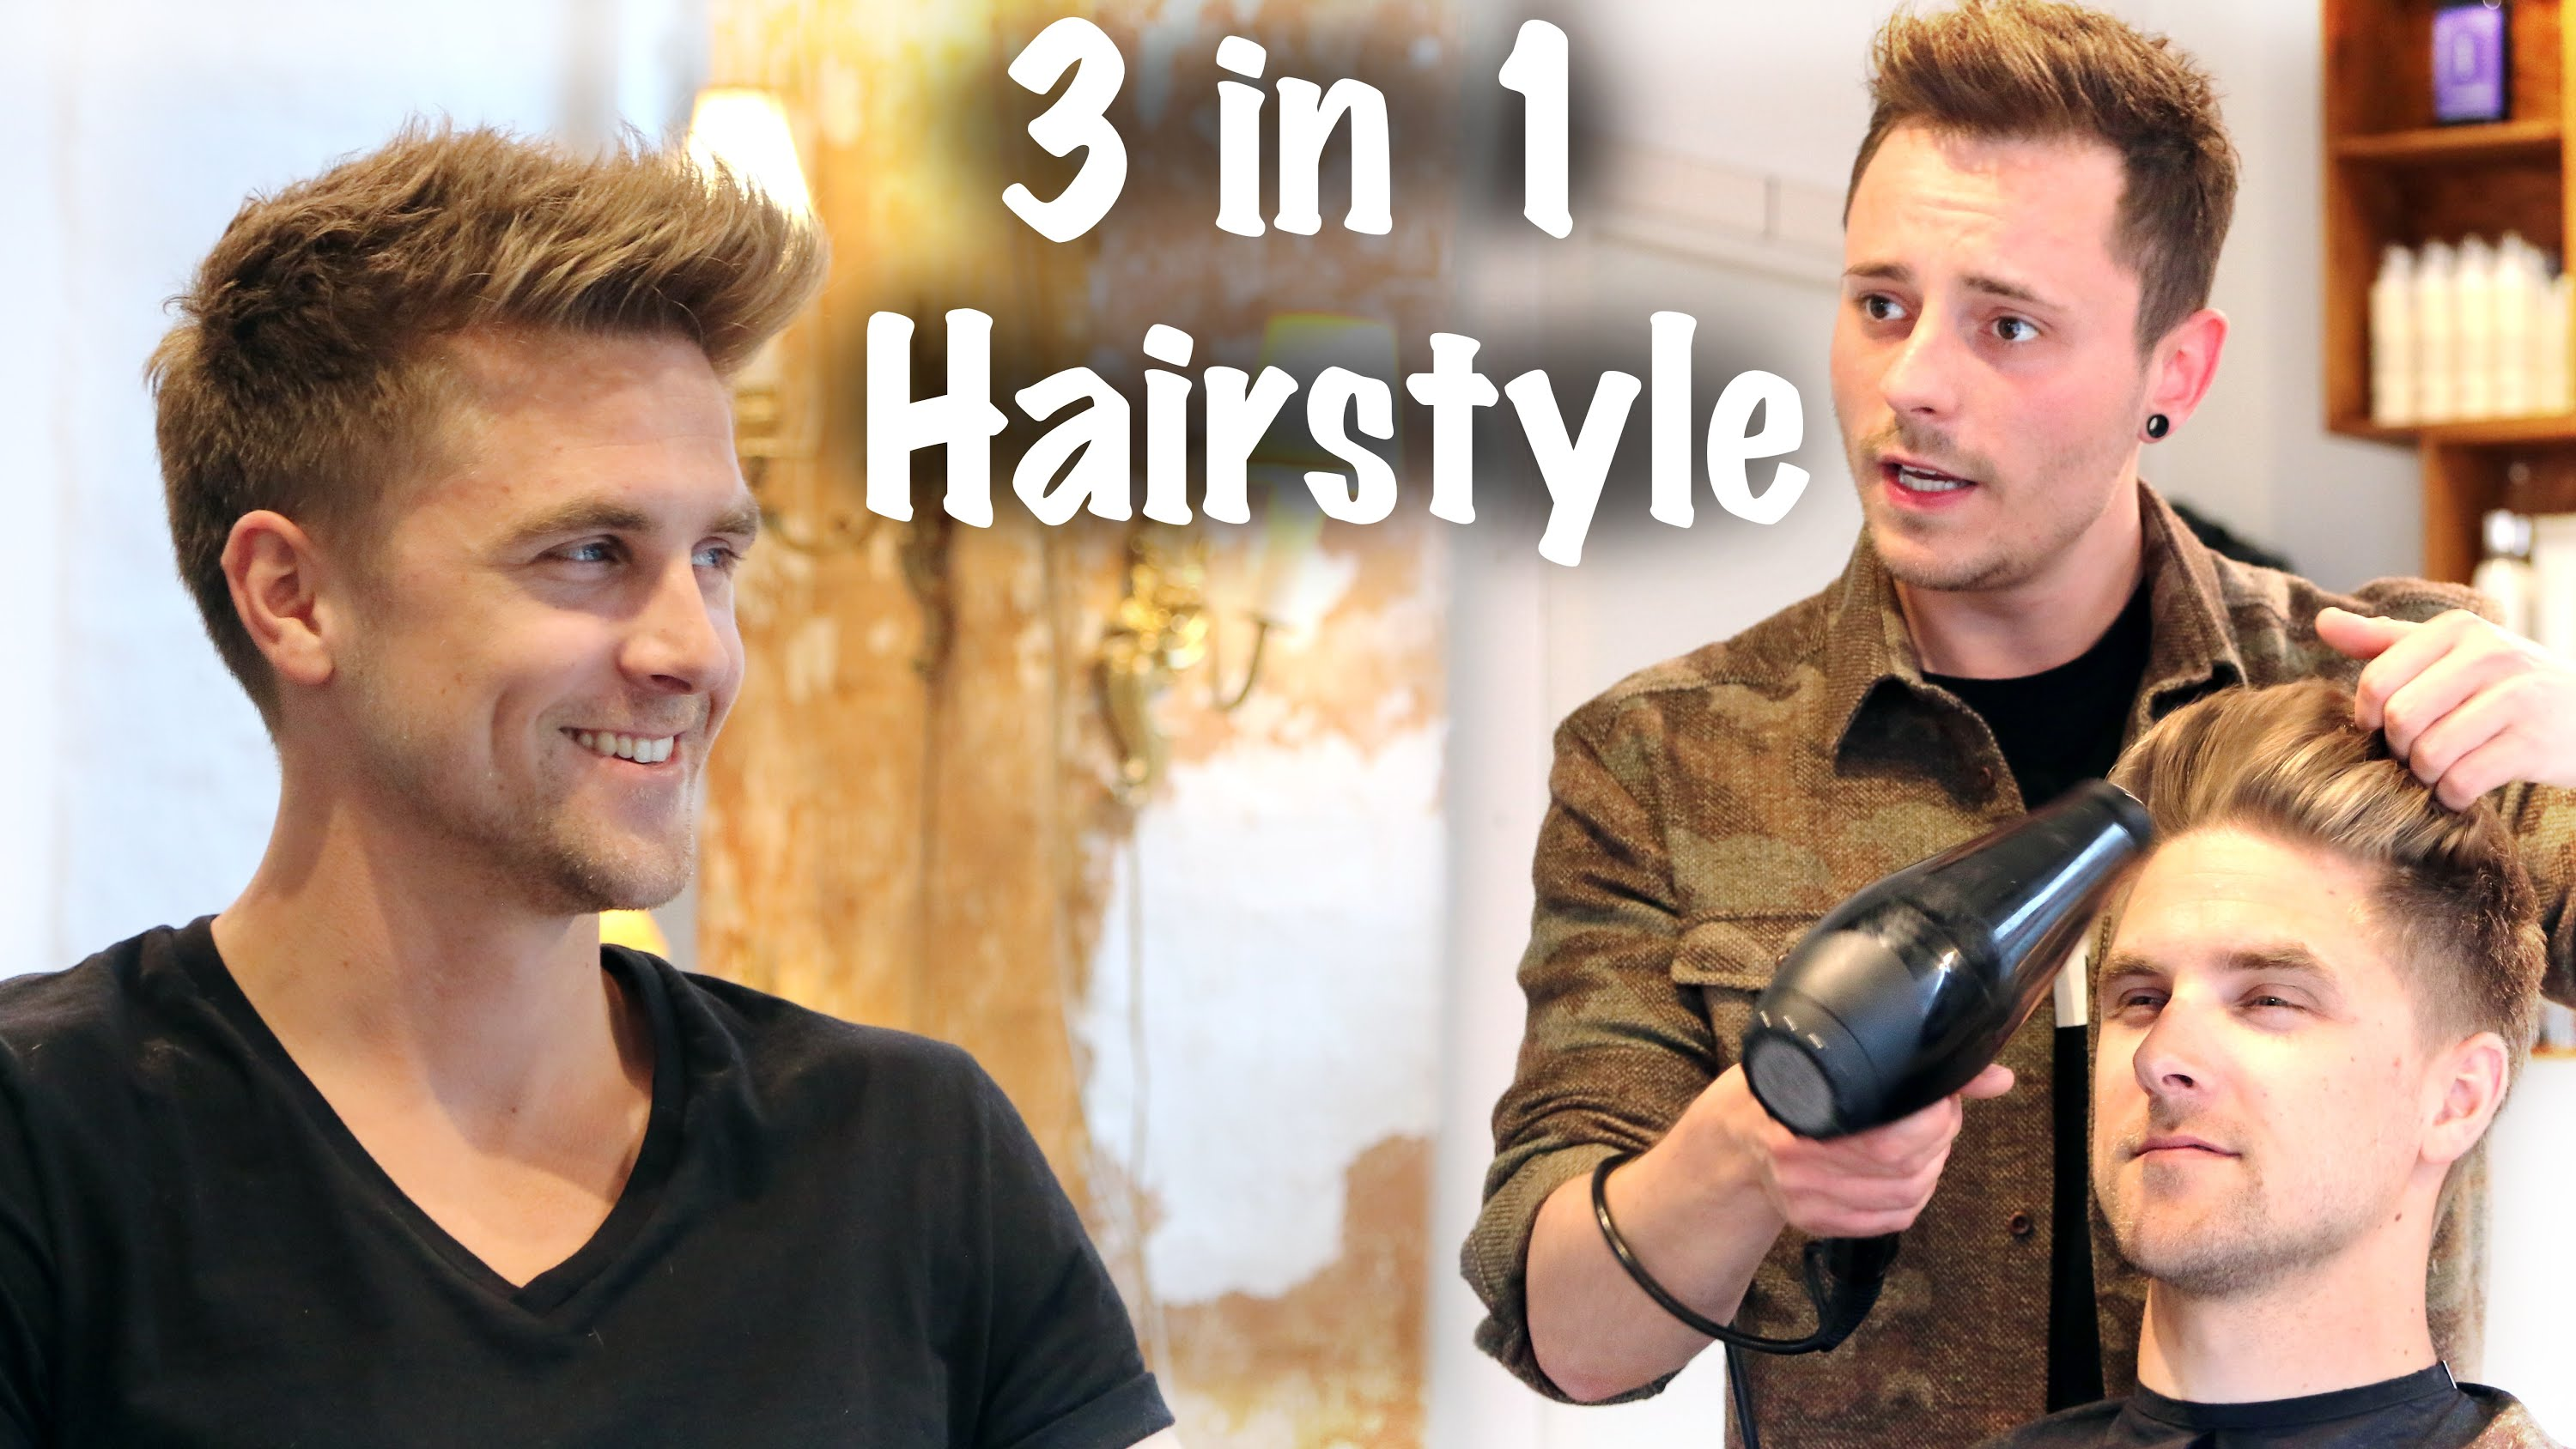 3 Hairstyles in 1 Haircut ★ Professional hair inspiration for men